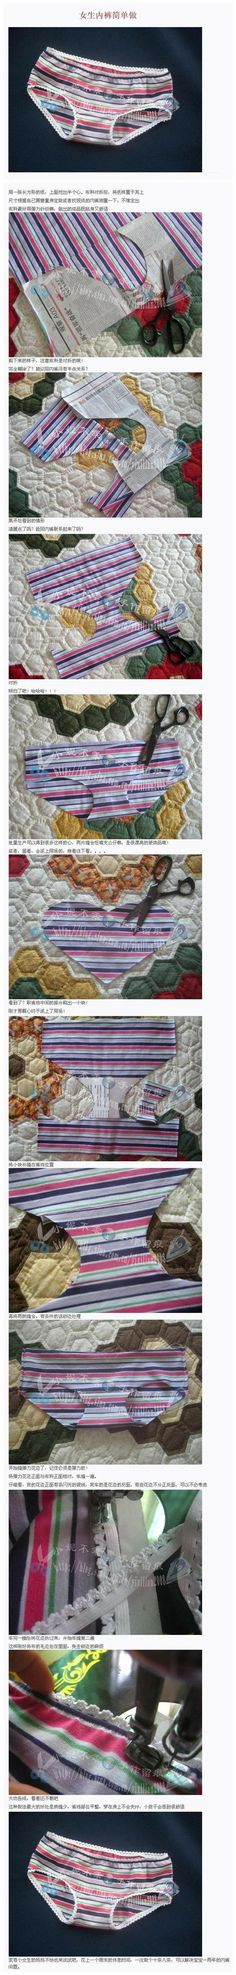 Doll panties pattern for a friend's American Girl doll: